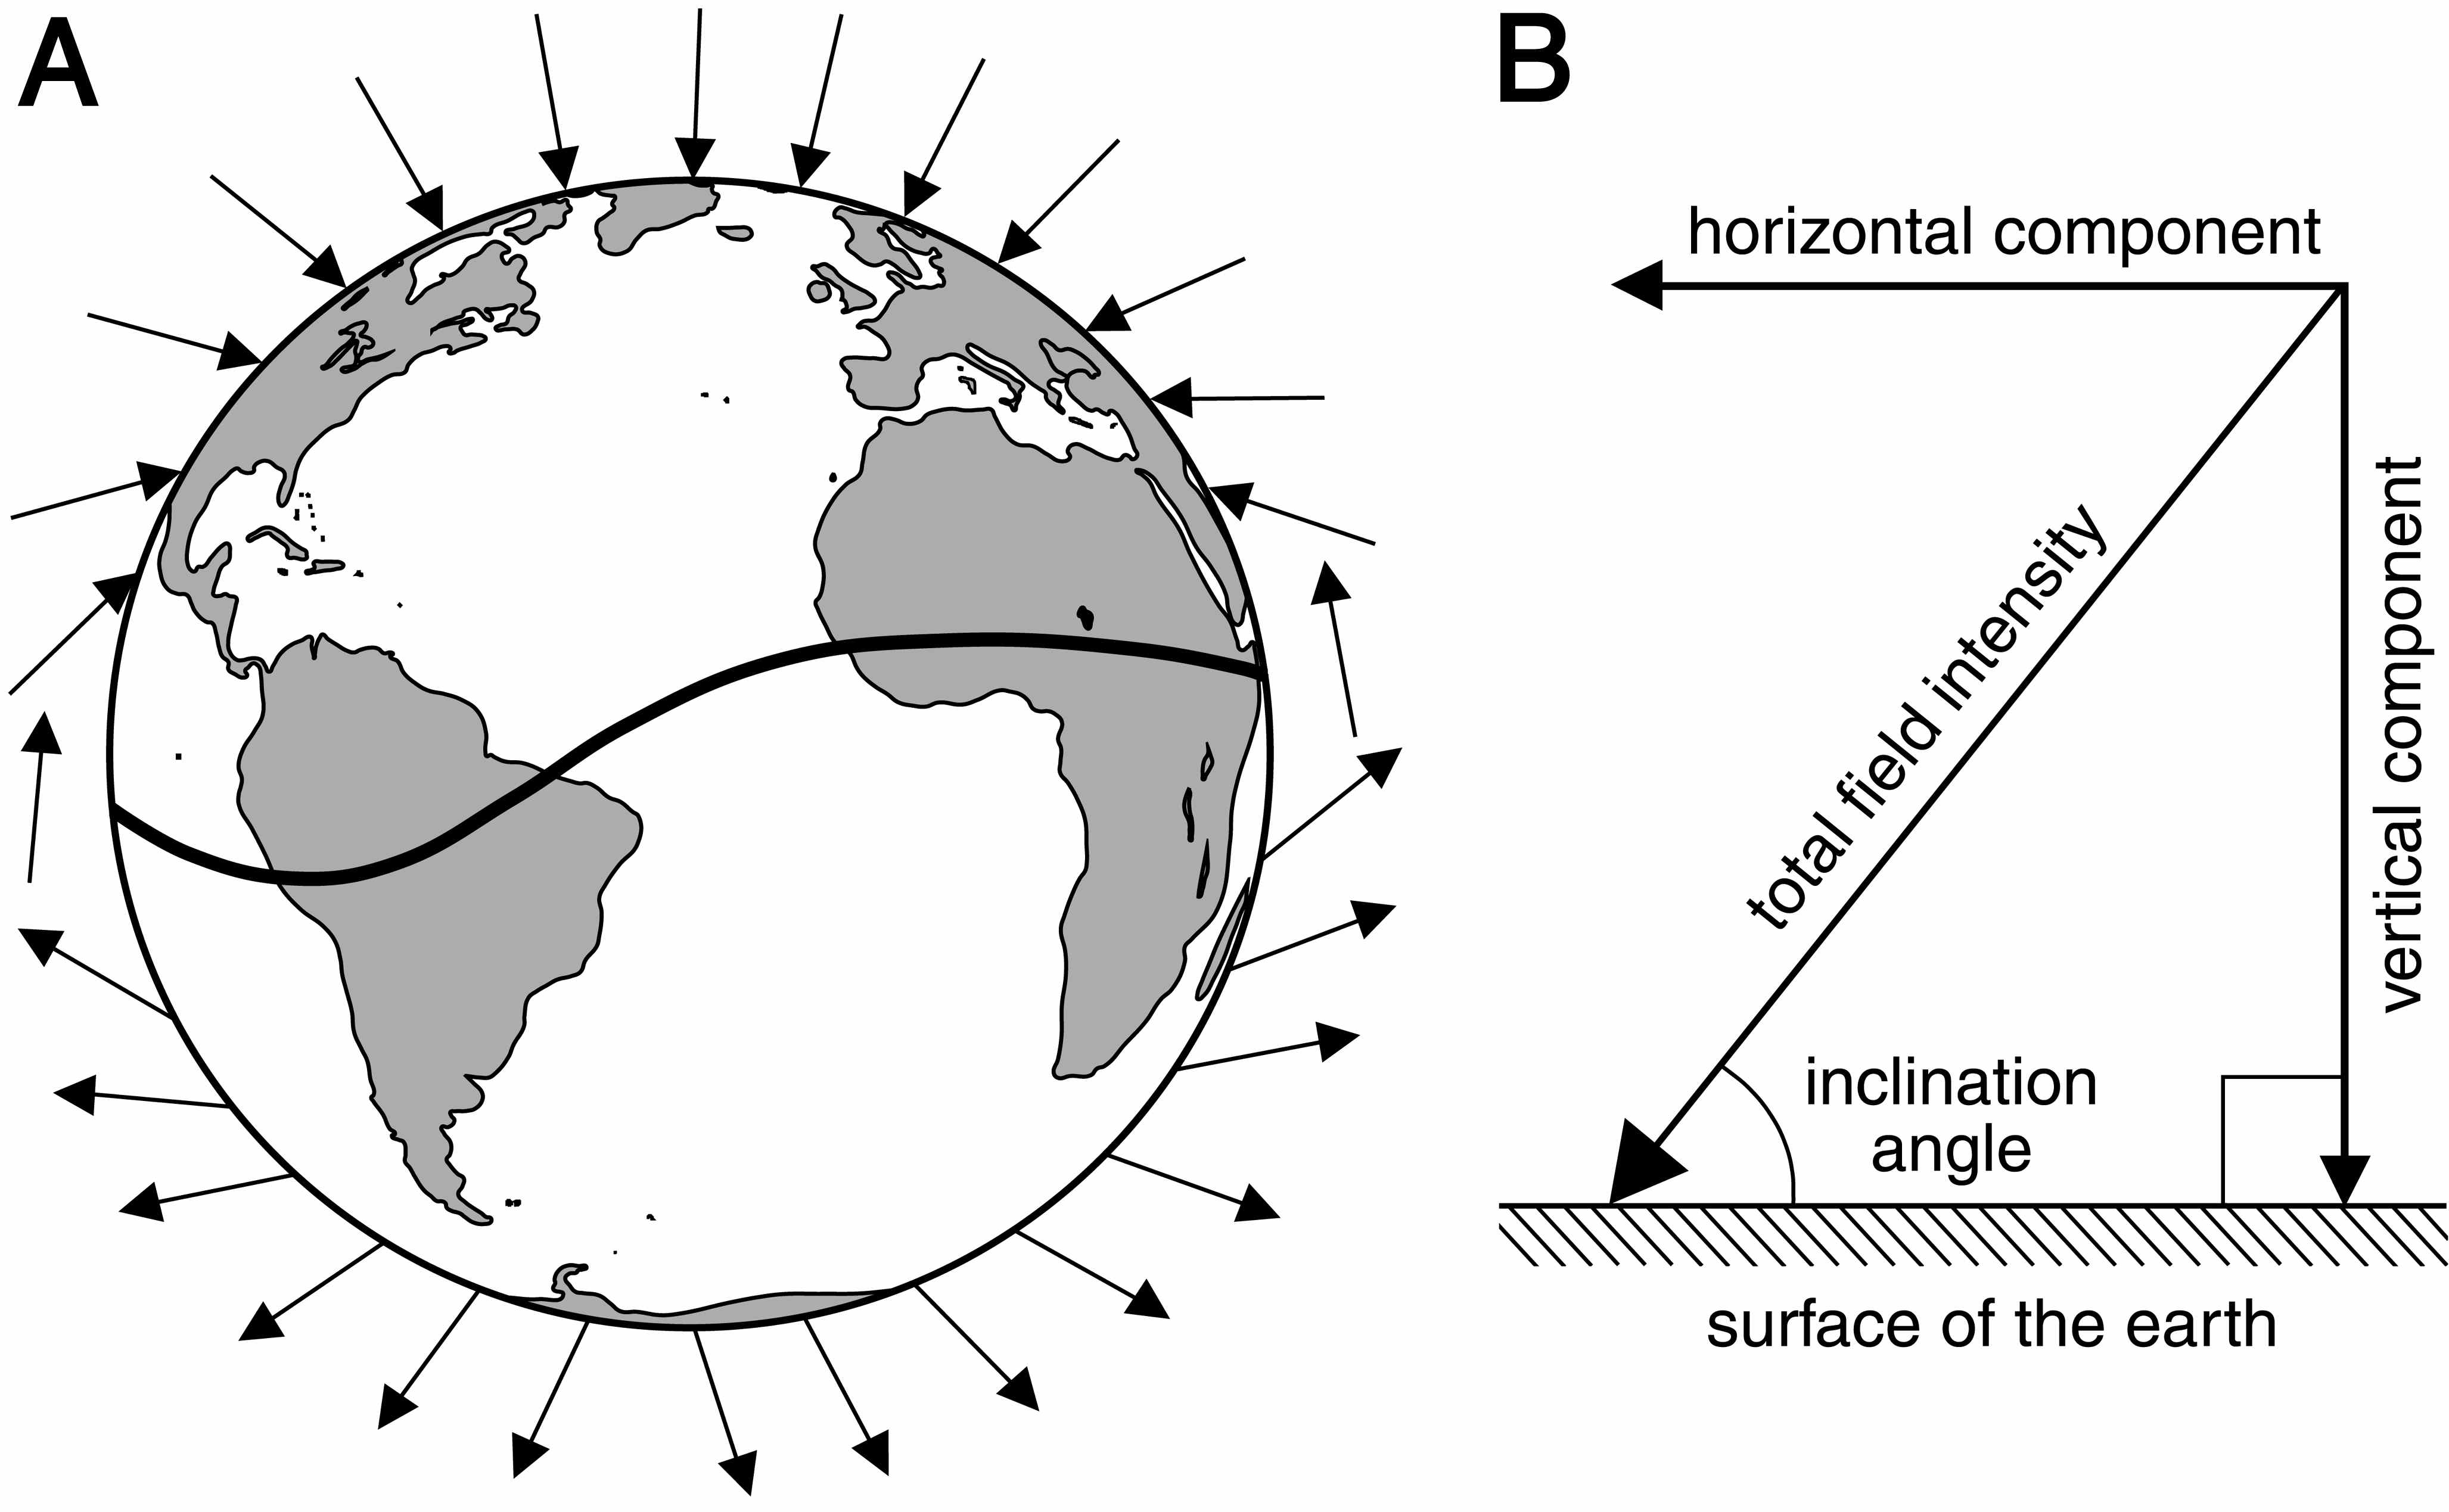 Geomagnetic Imprinting And Natal Homing In Sea Turtles And